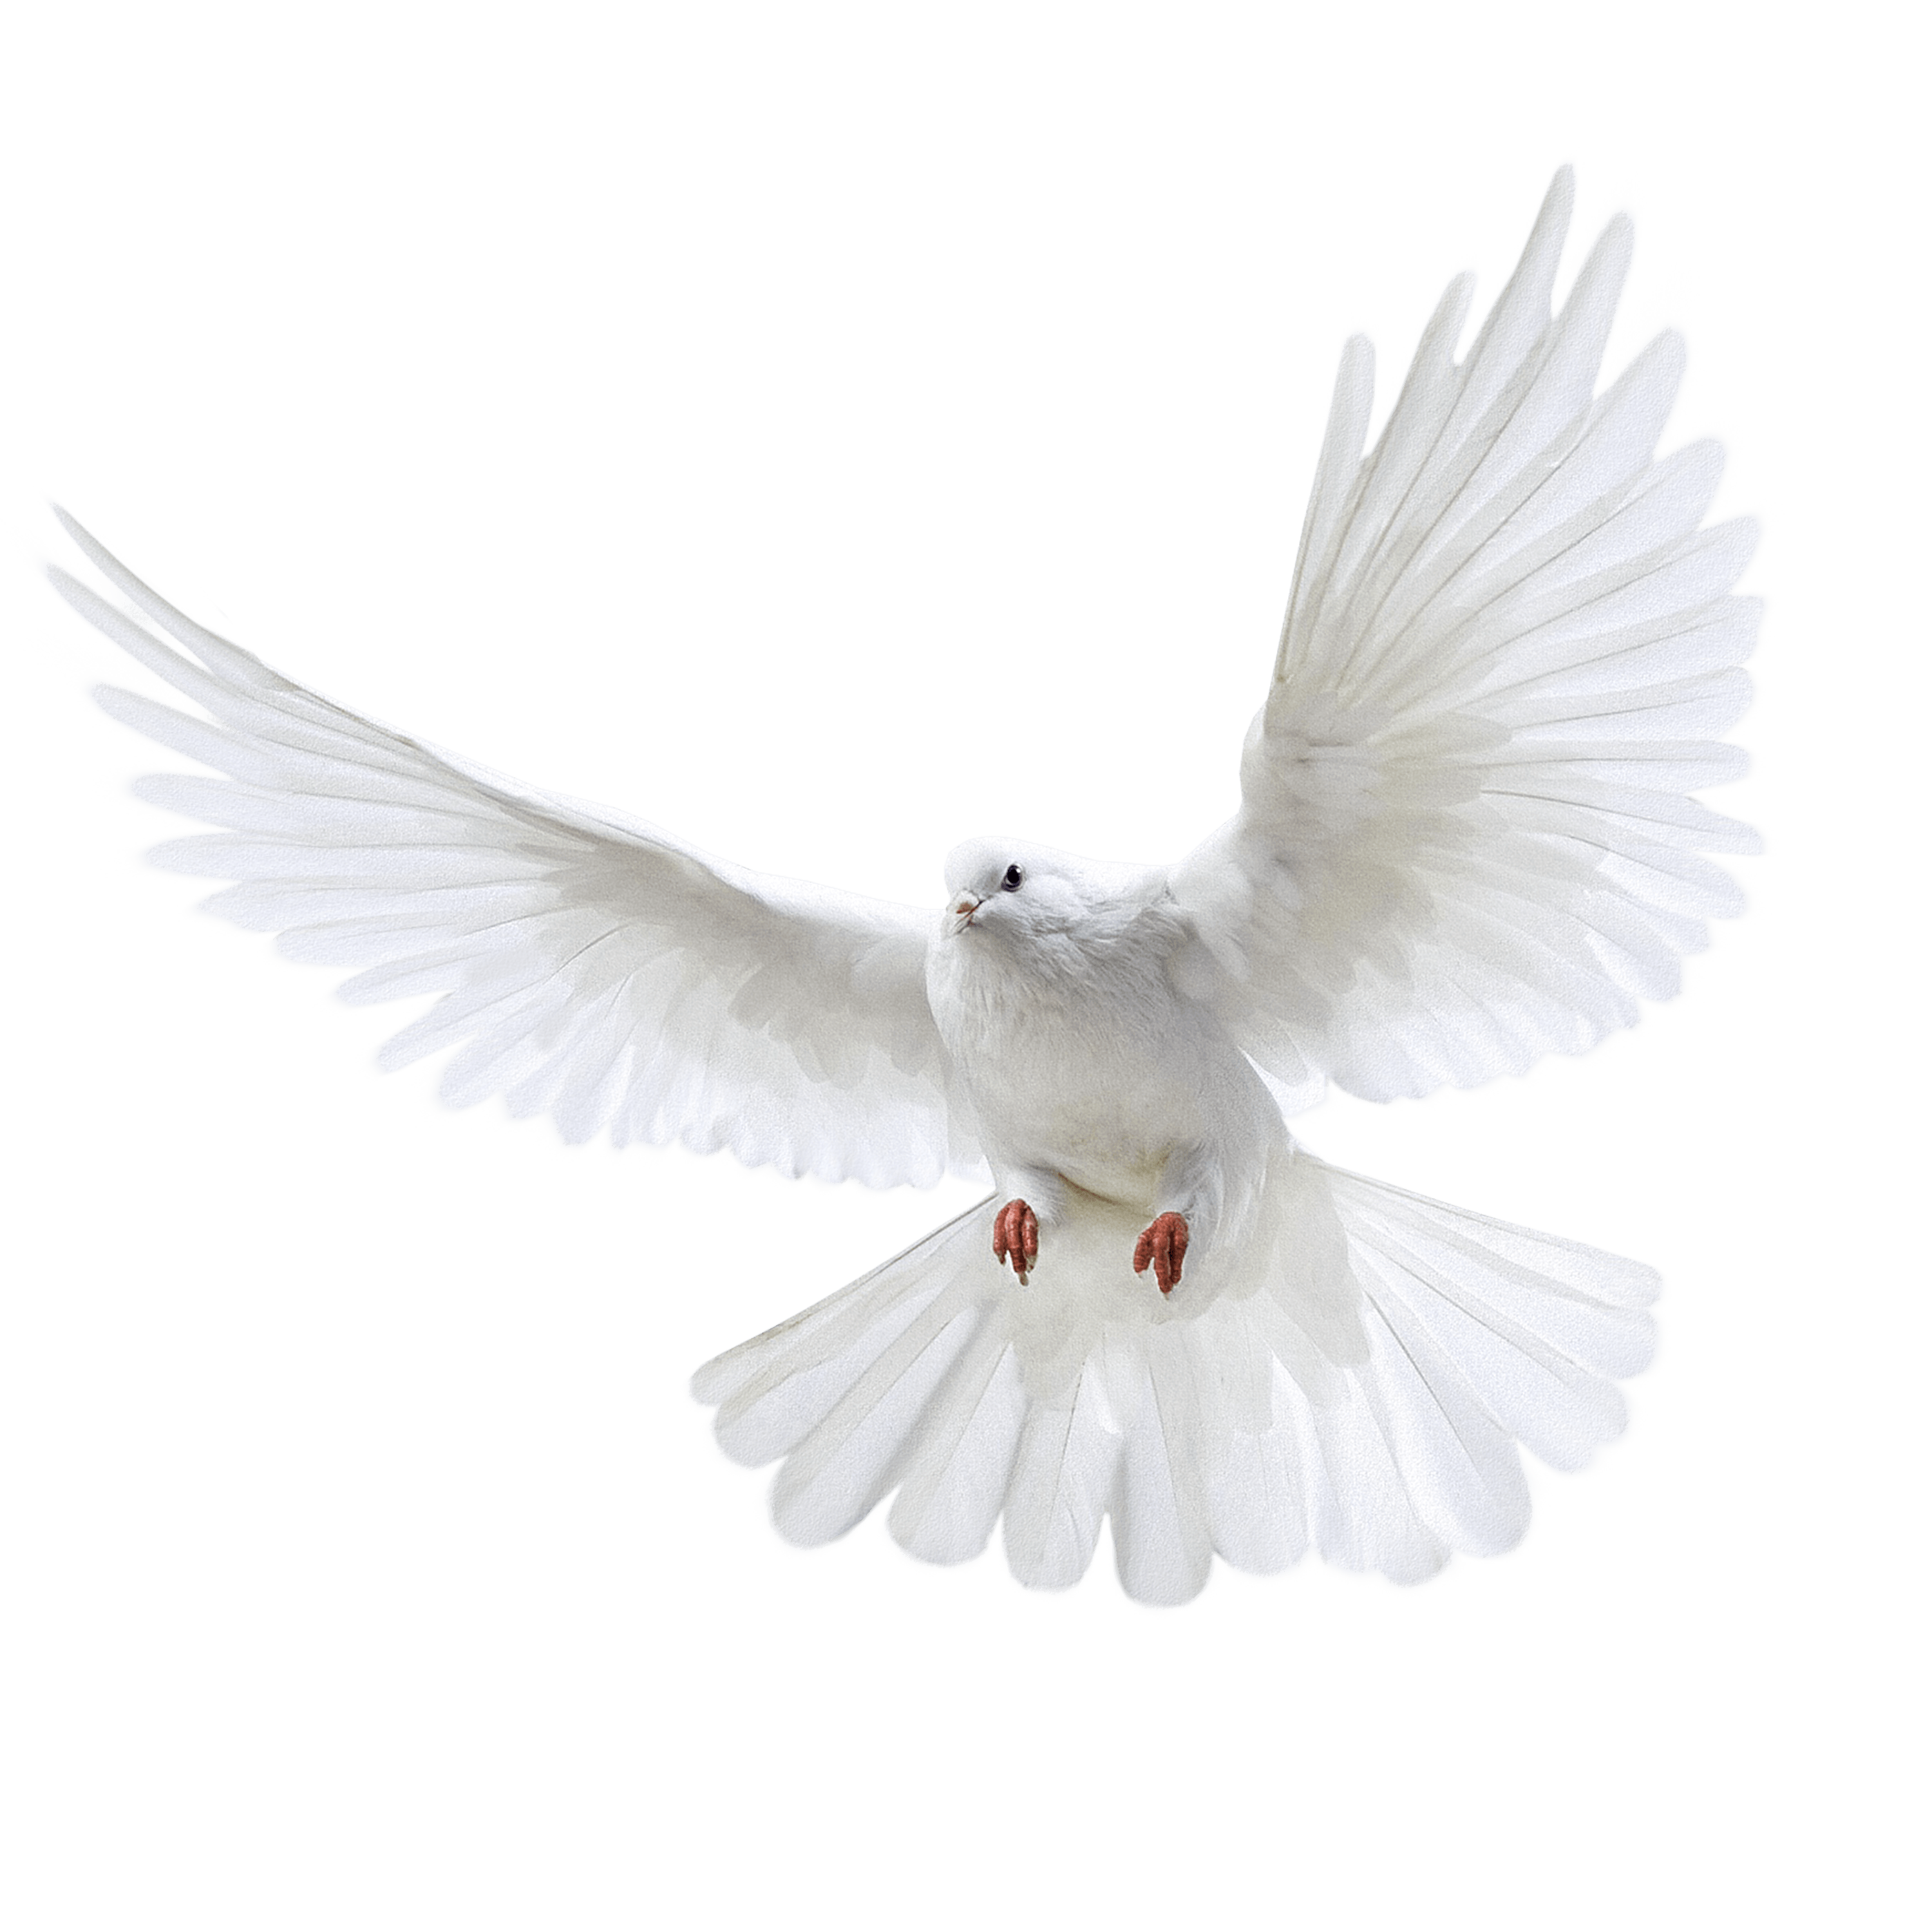 White Pigeon flying PNG Image.